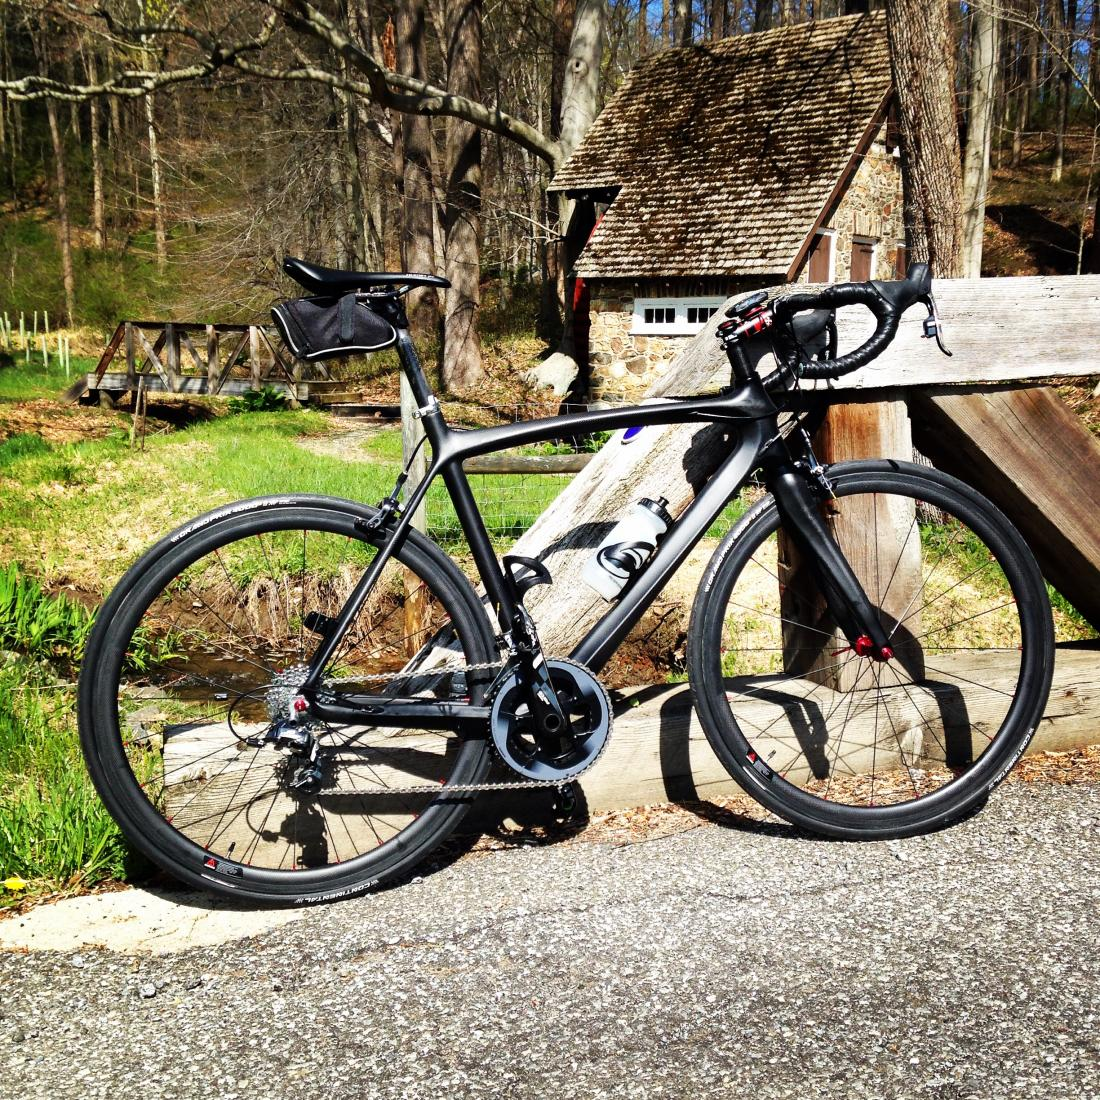 Carbon Fiber Frame Bikes For Sale Ebay >> Chinese Carbon Thread And Ebay Direct Version 7 0